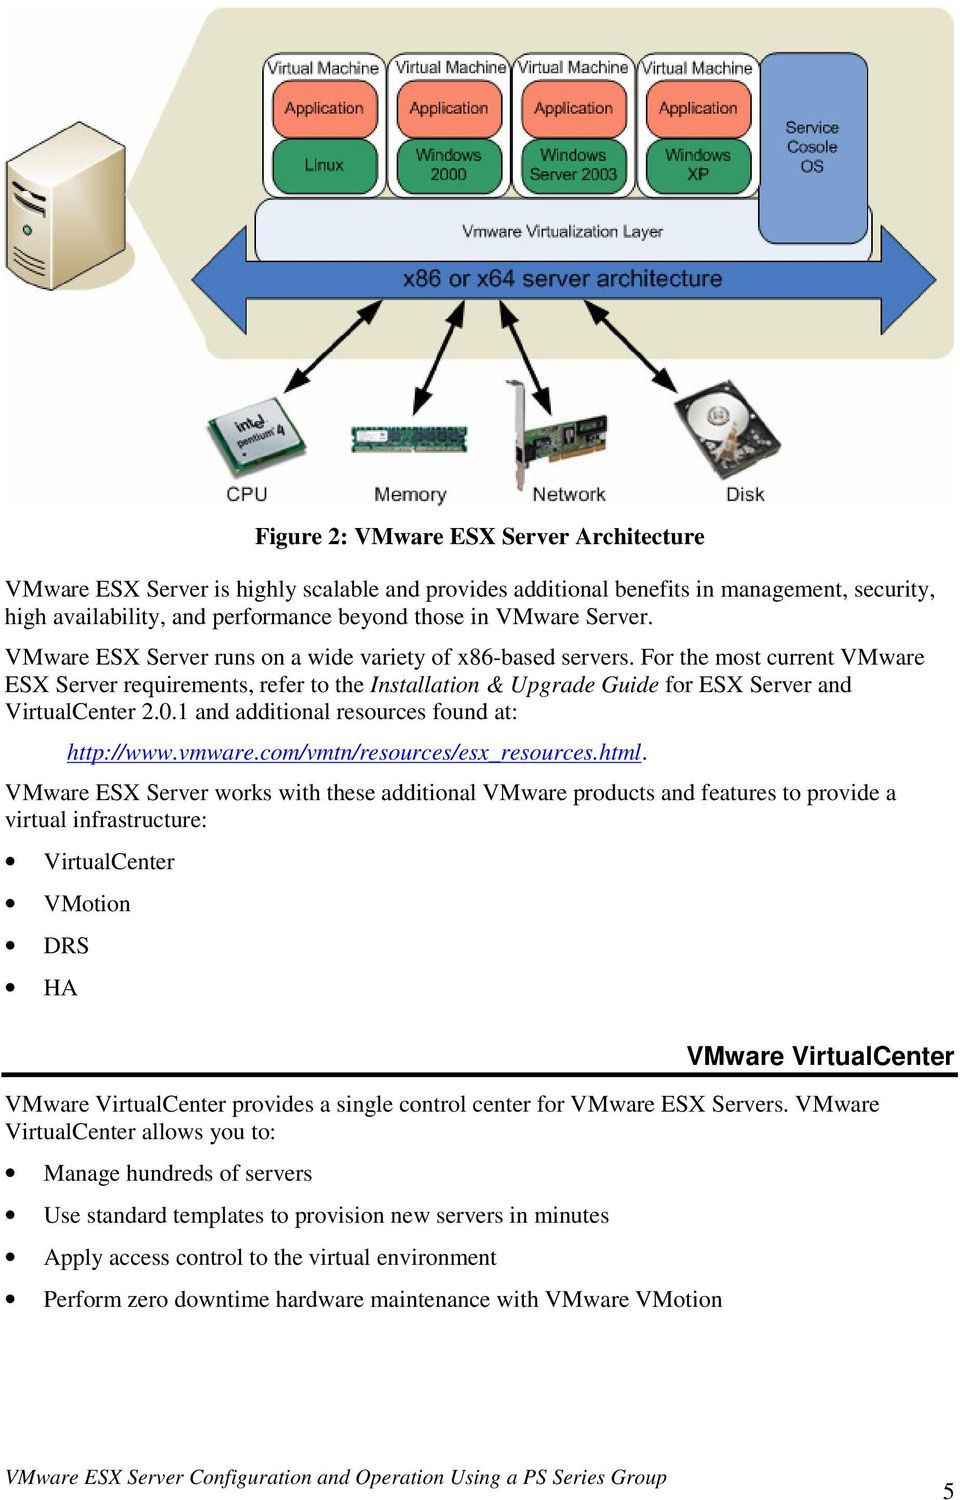 For the most current VMware ESX Server requirements, refer to the Installation & Upgrade Guide for ESX Server and VirtualCenter 2.0.1 and additional resources found at: http://www.vmware.